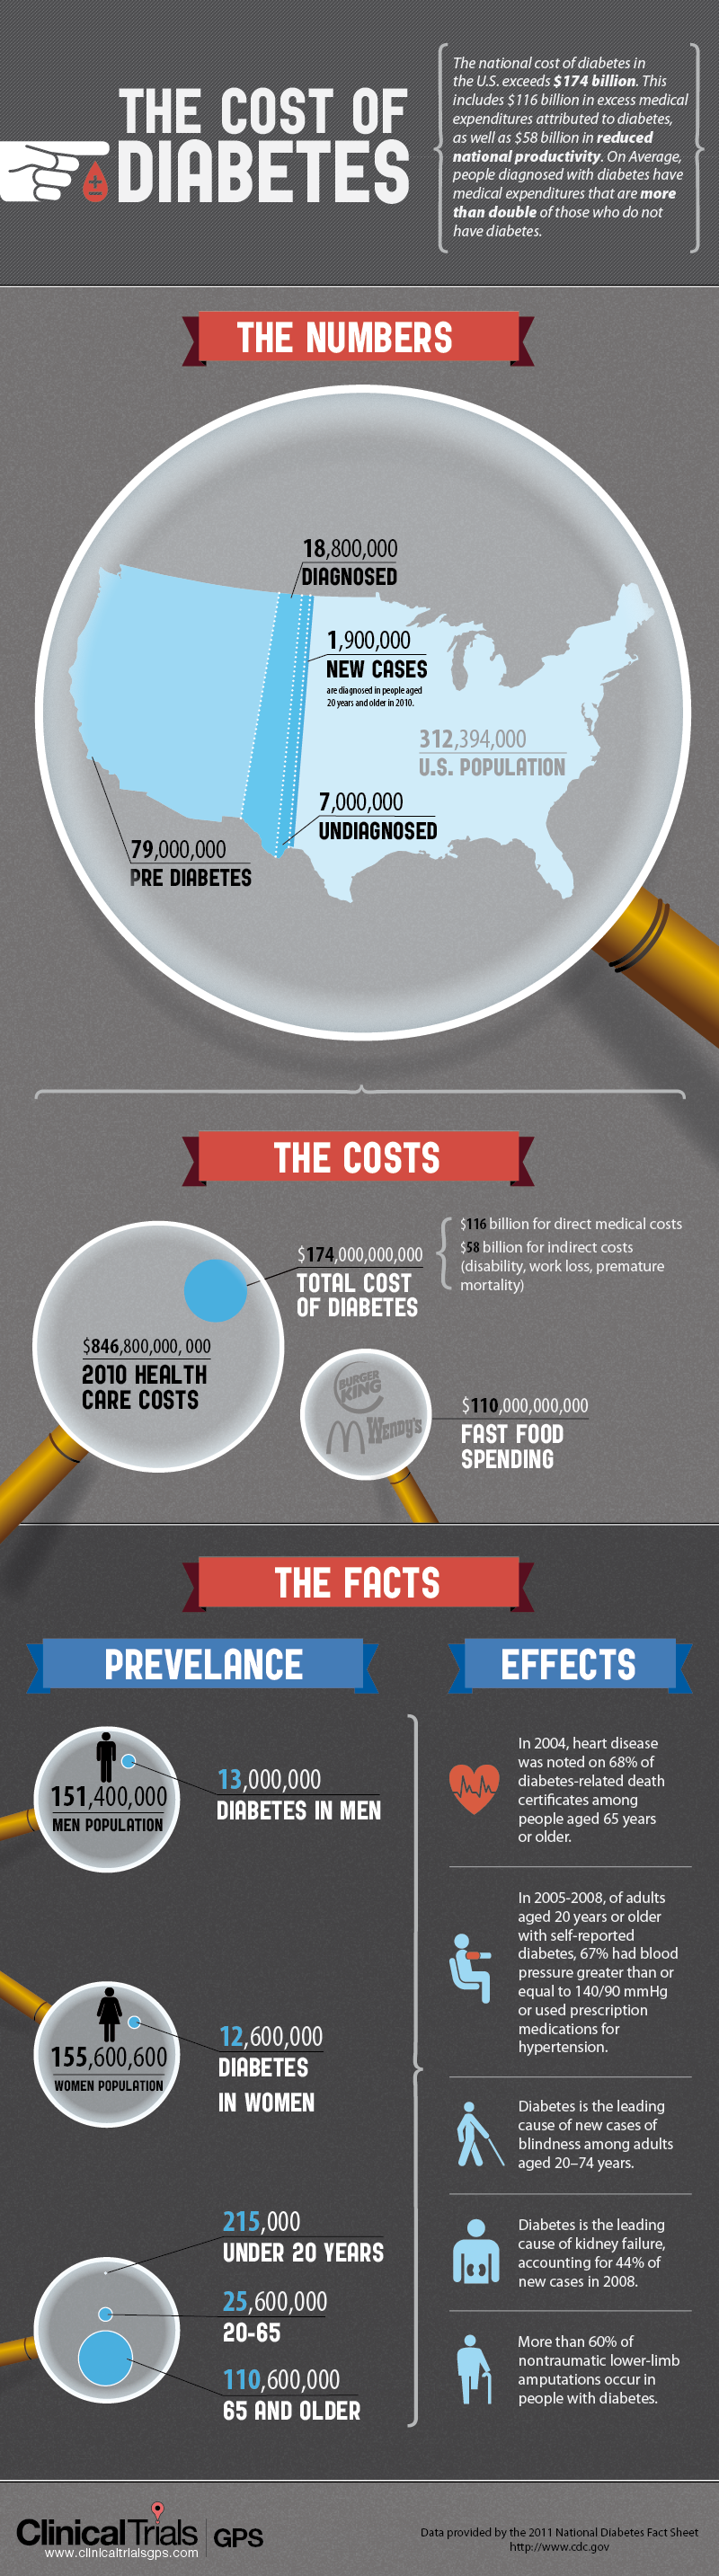 An infographic detailing the annual cost of diabetes